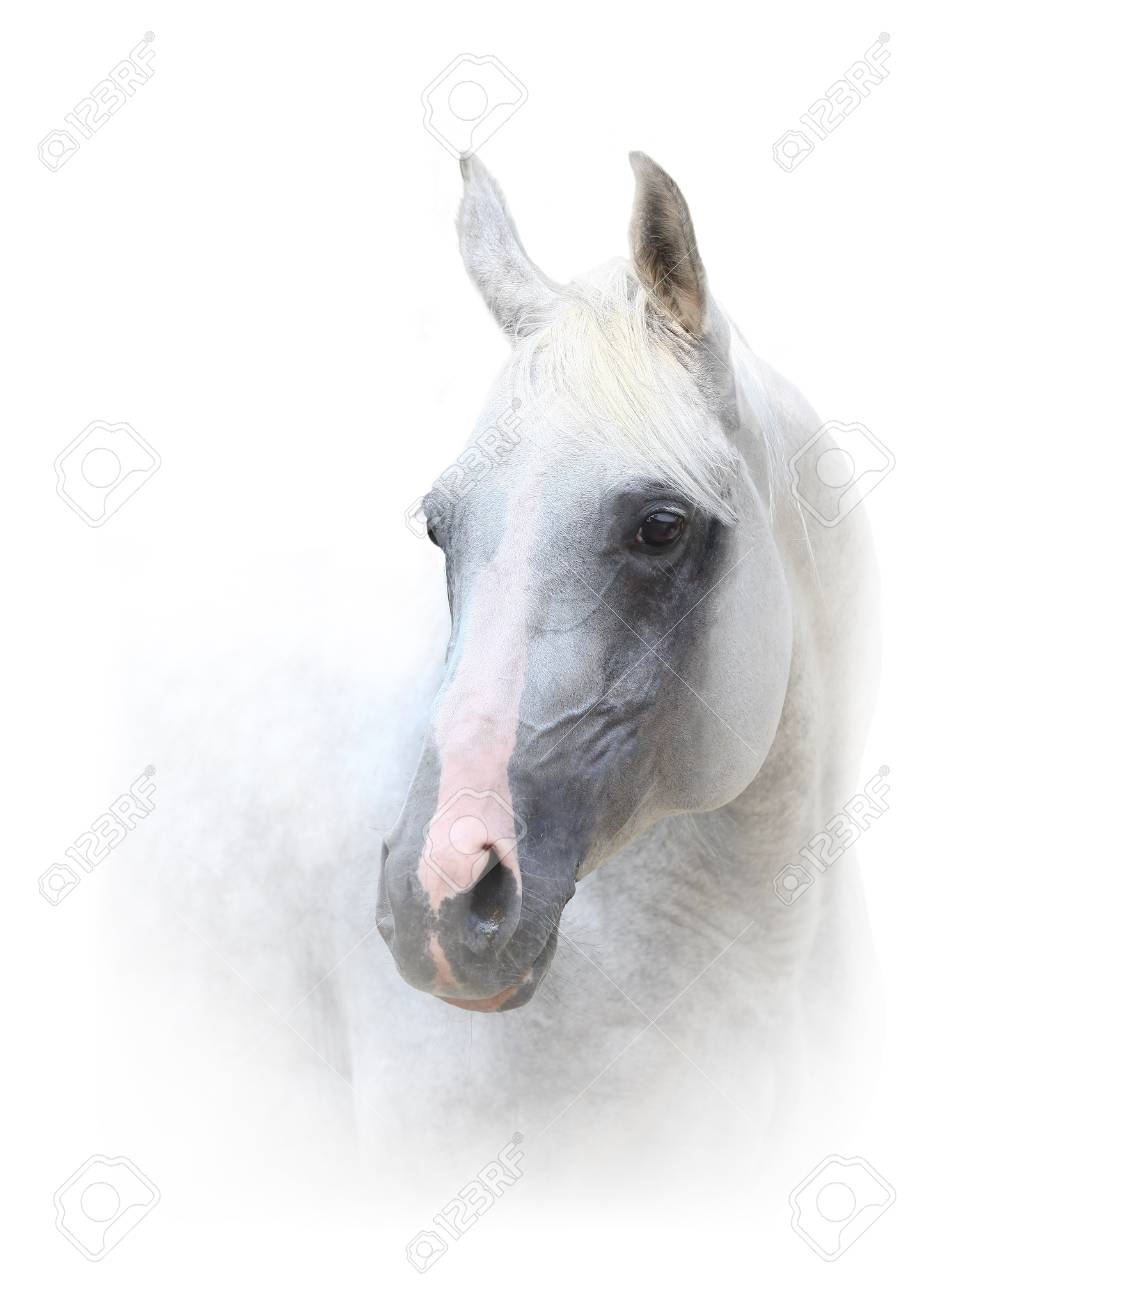 Beautiful White Horse Portrait On White Stock Photo Picture And Royalty Free Image Image 101010911